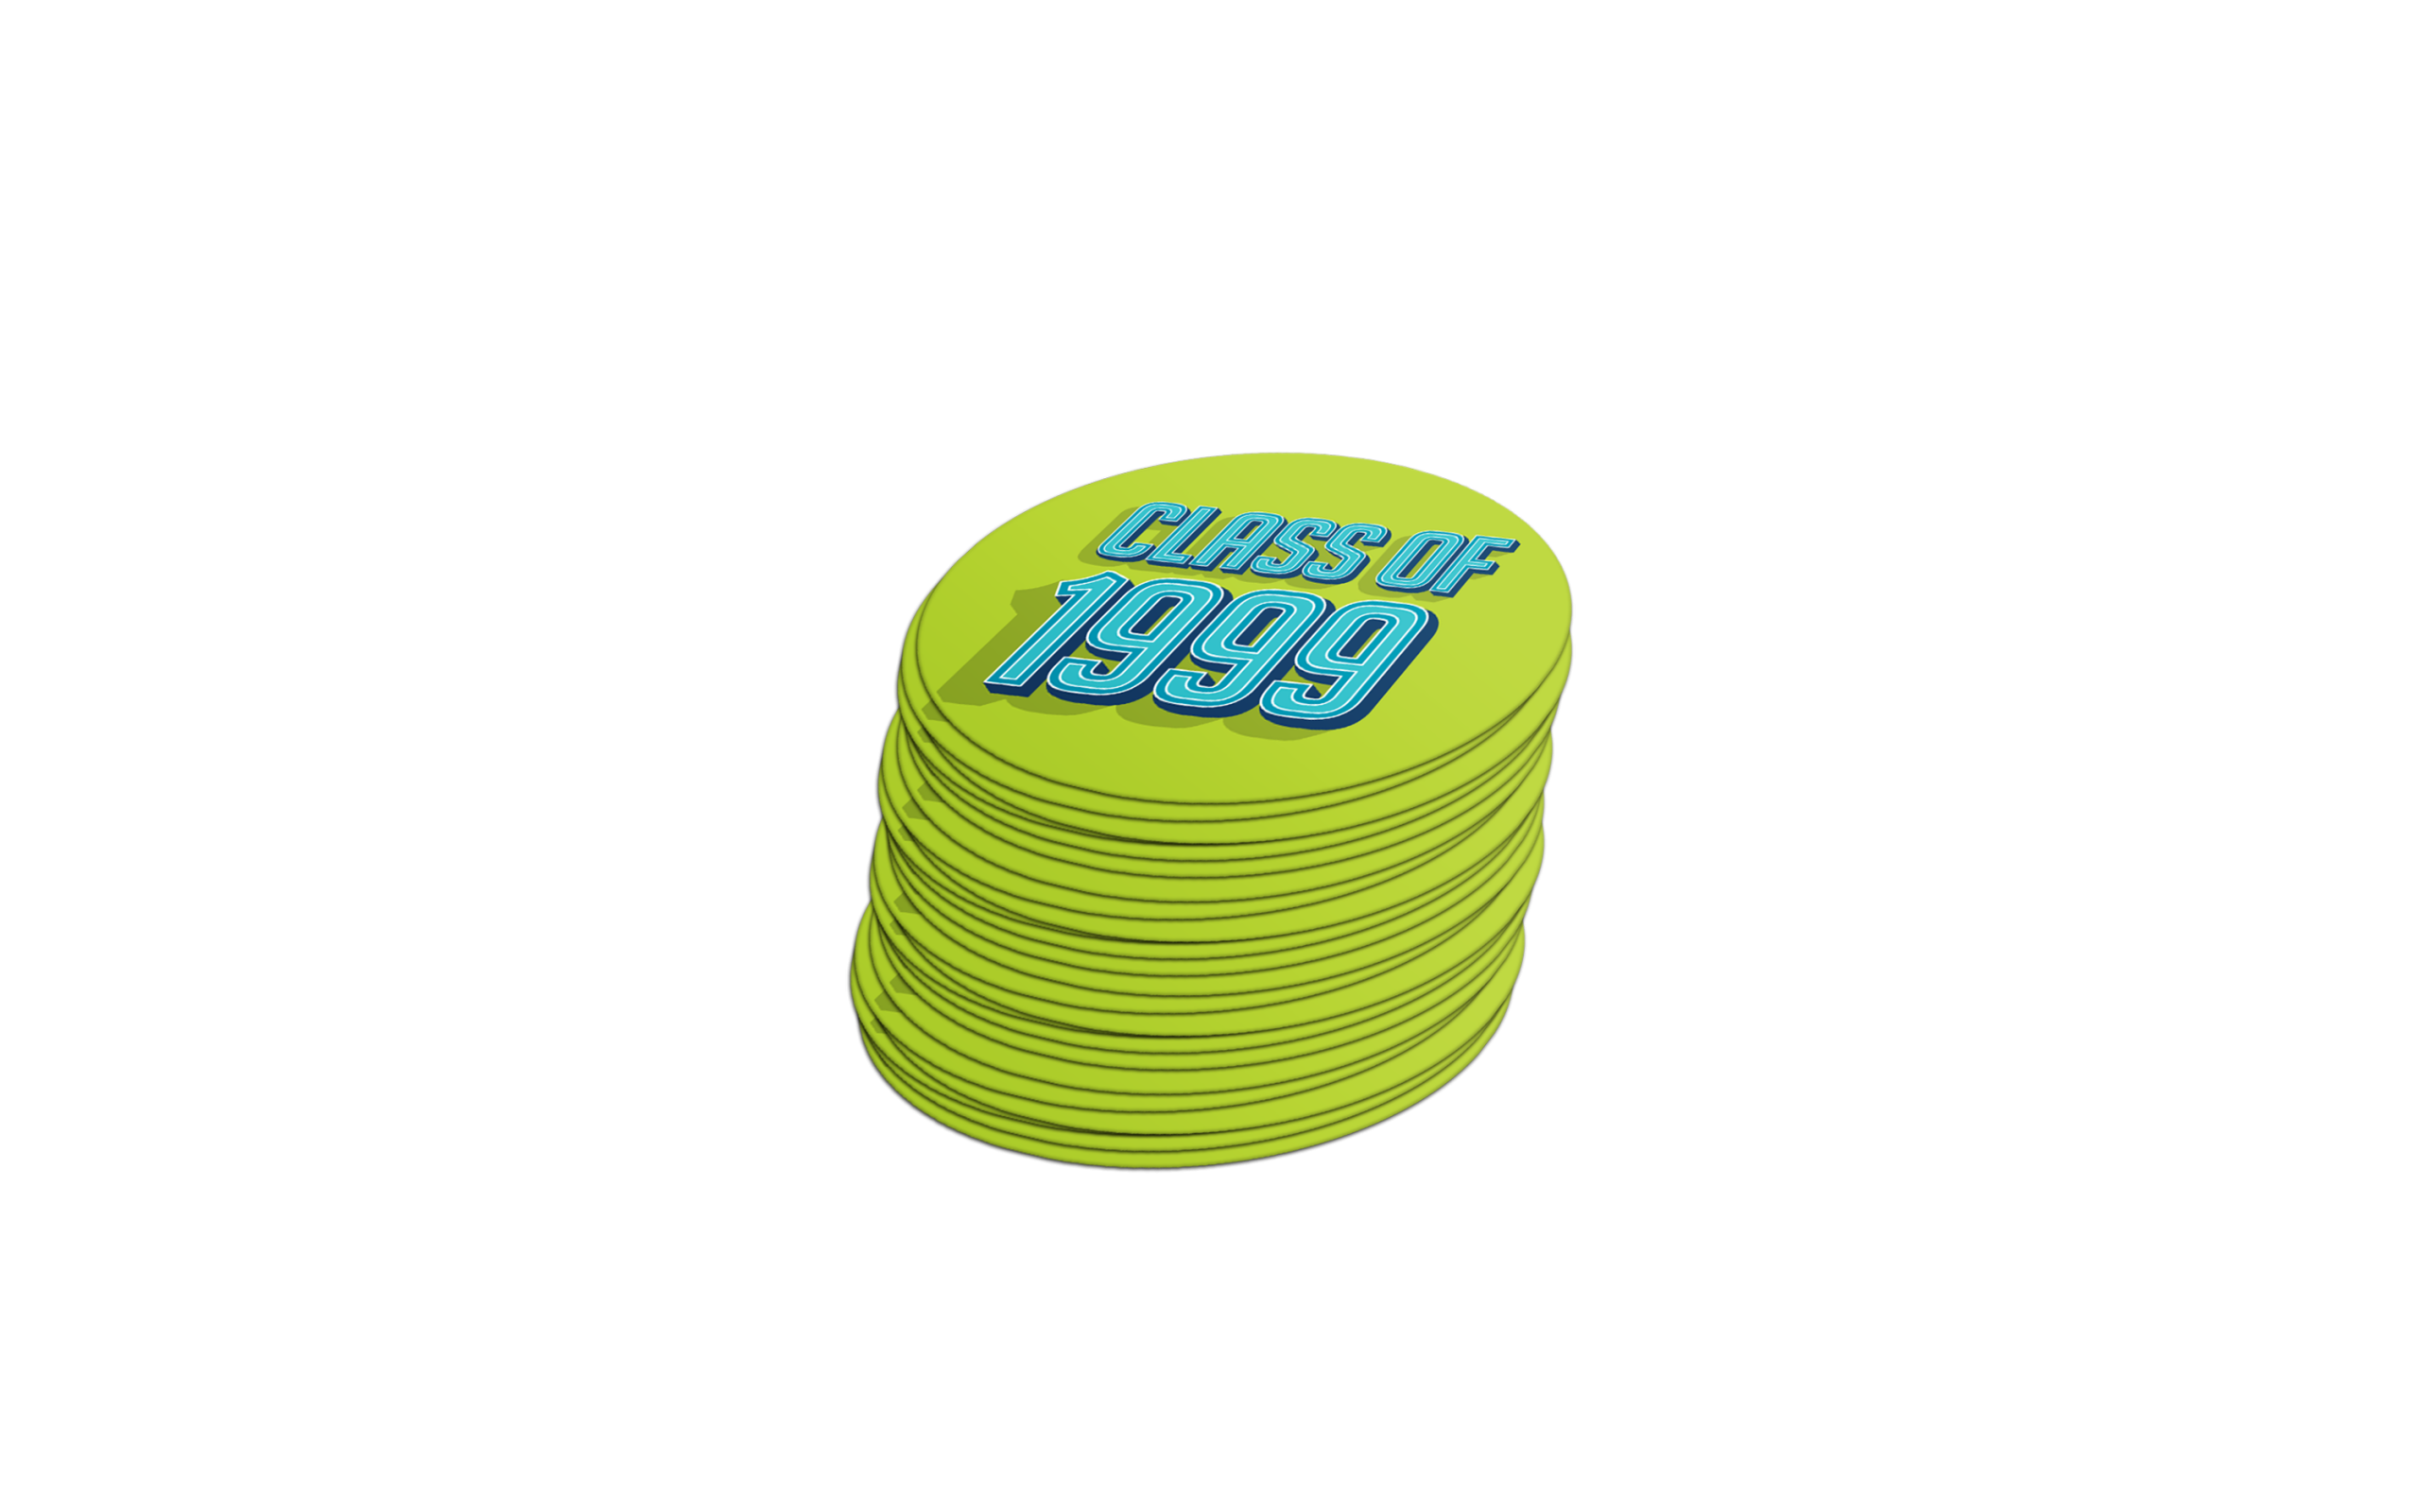 Stack of green stickers with 'Class of 1999' printed on